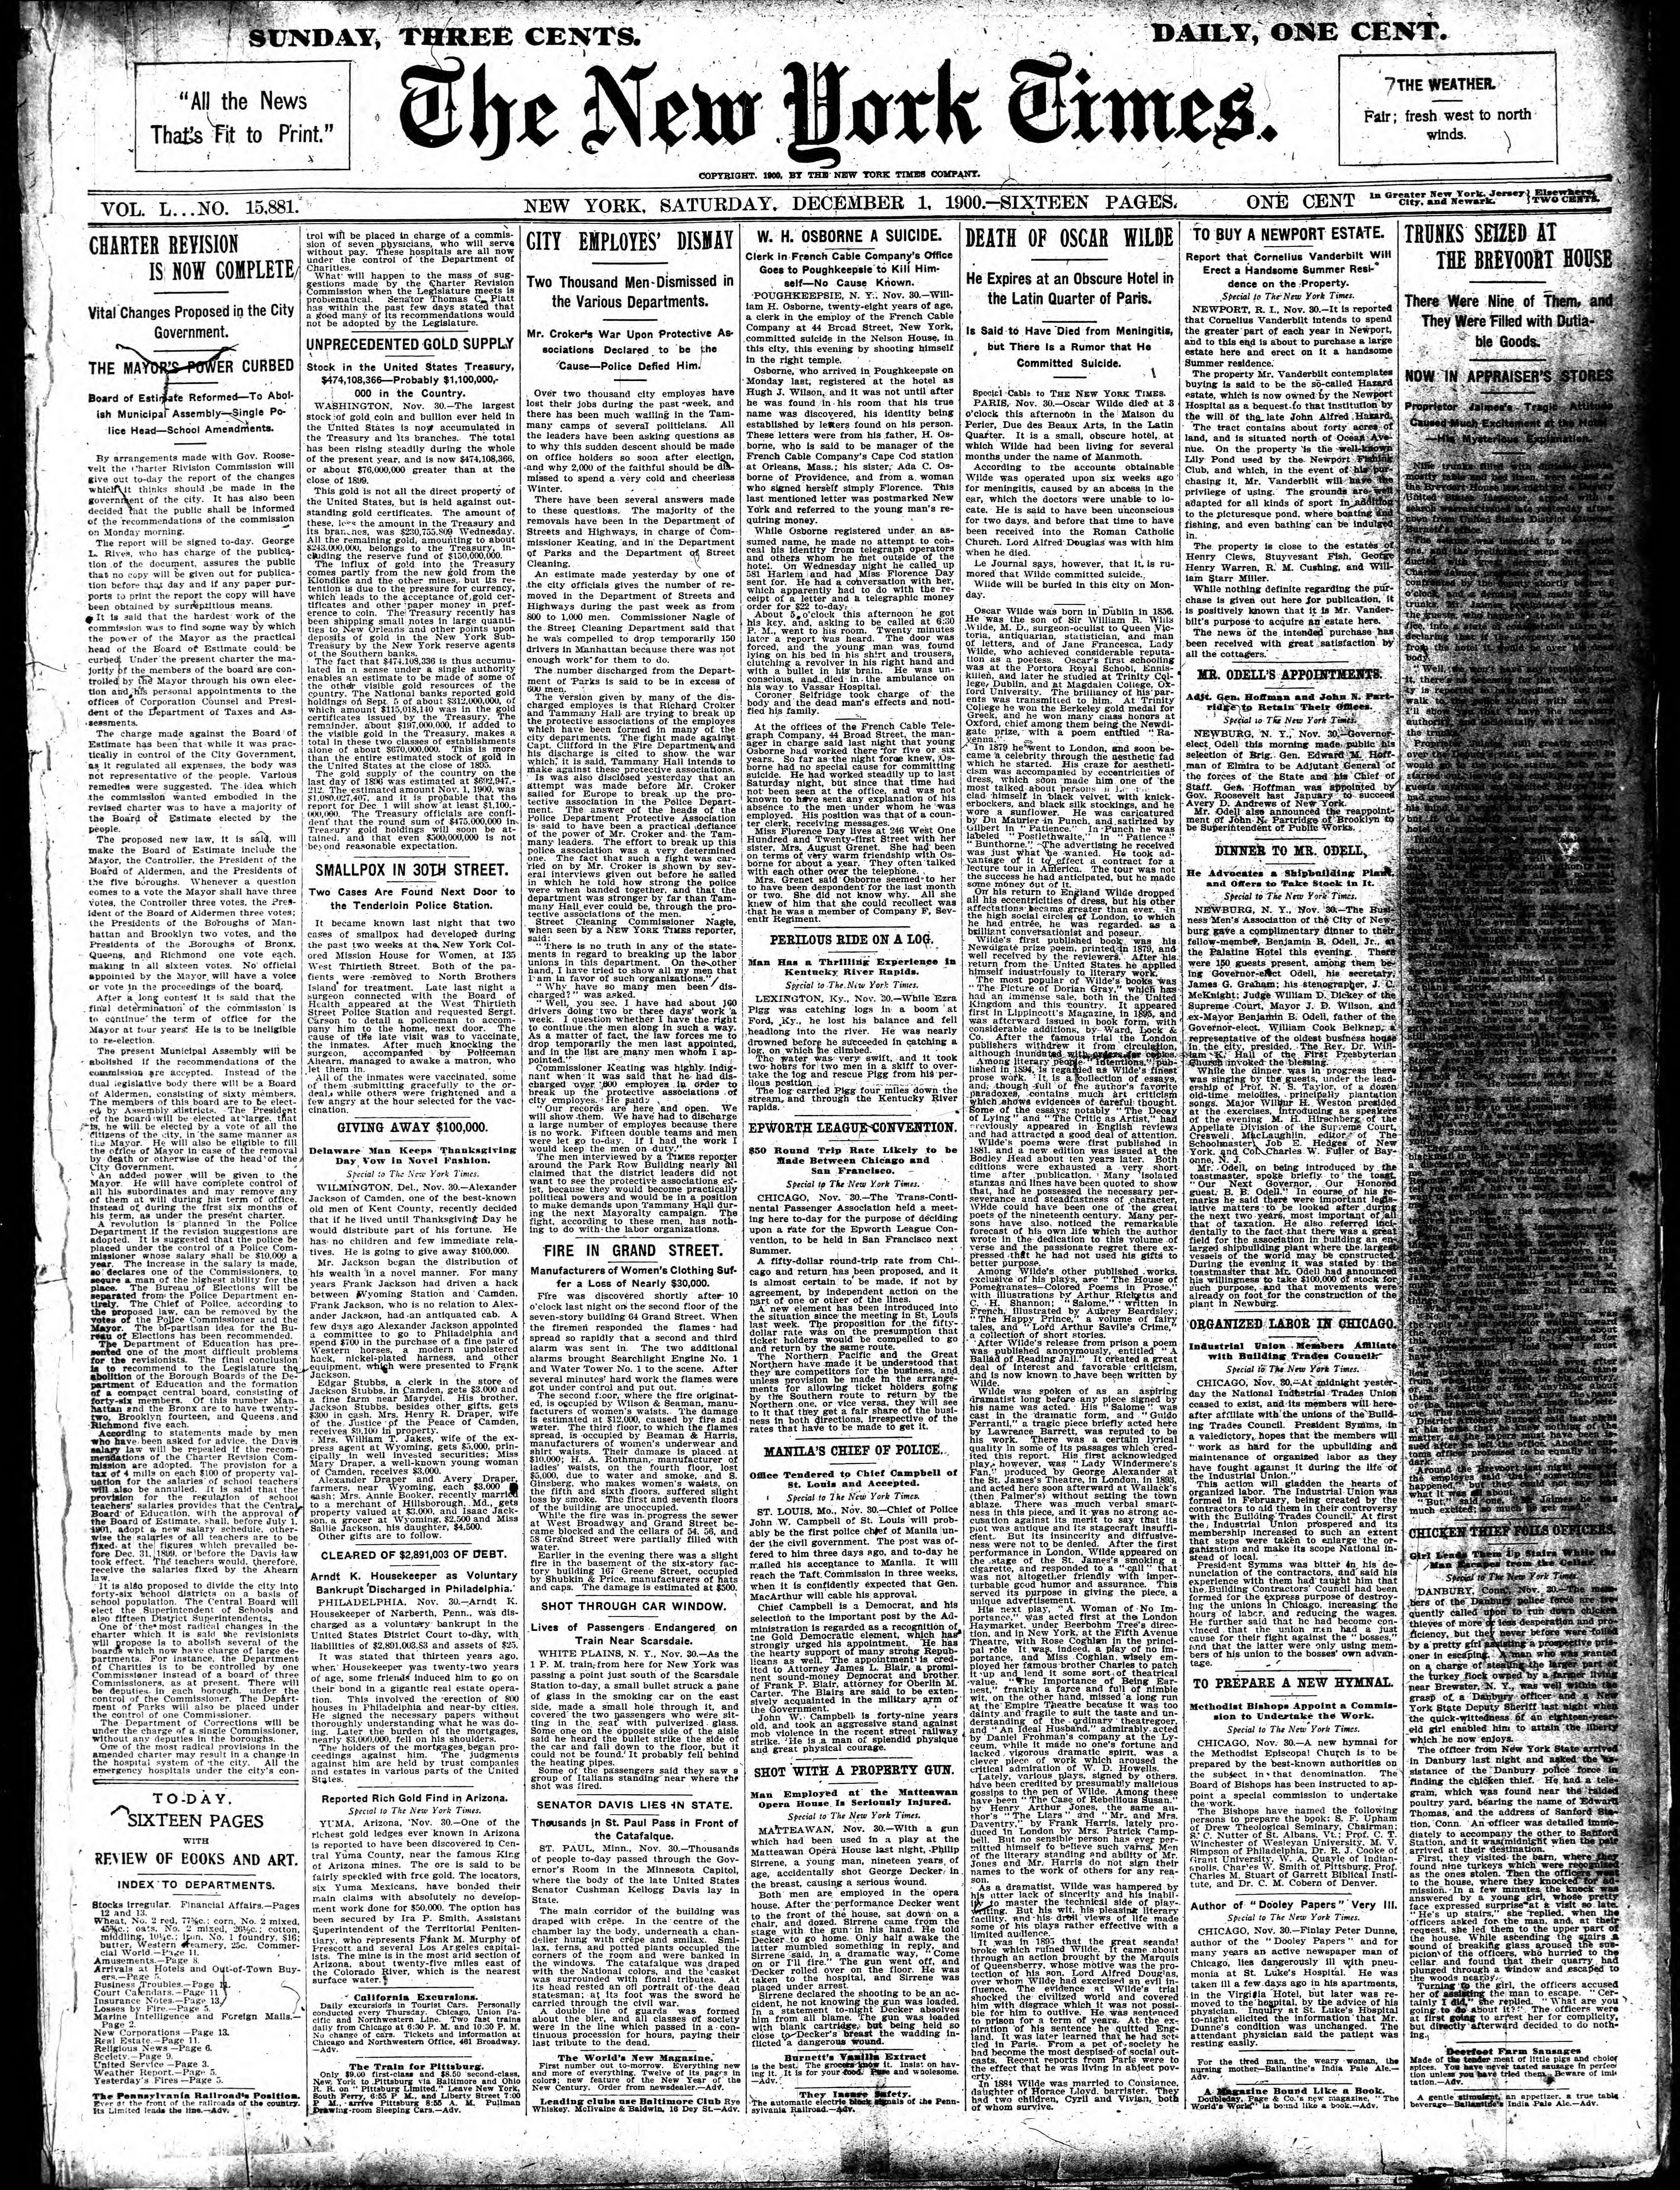 Page:The New York Times, 1900-12-01.djvu/1 - Wikisource, the free online library